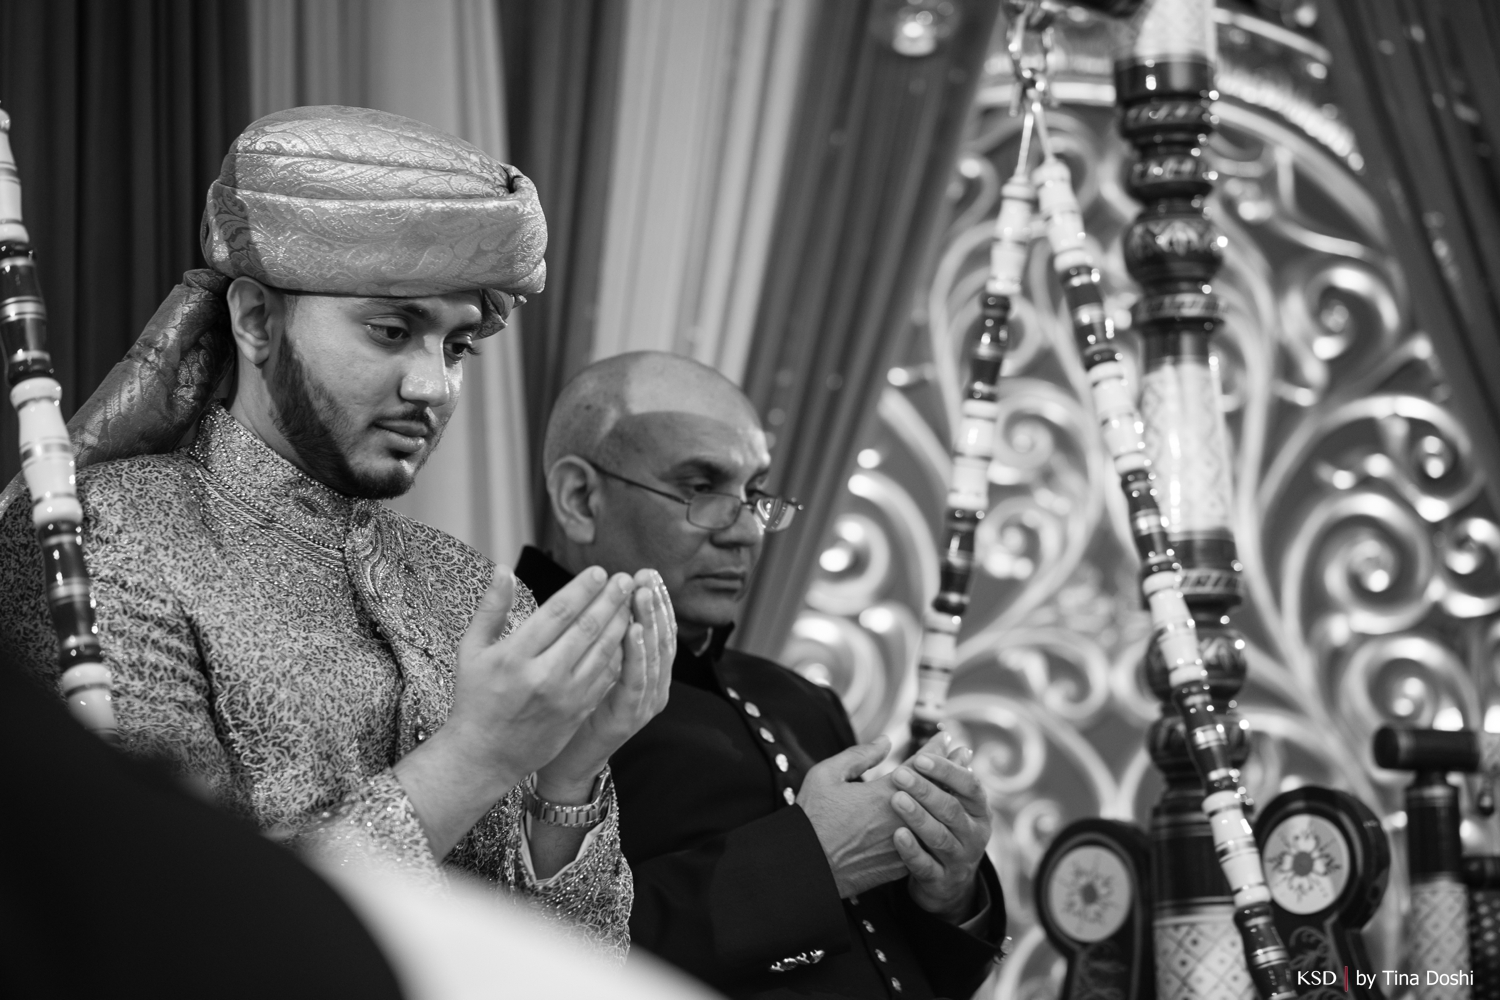 nj_south_asian_wedding_0045